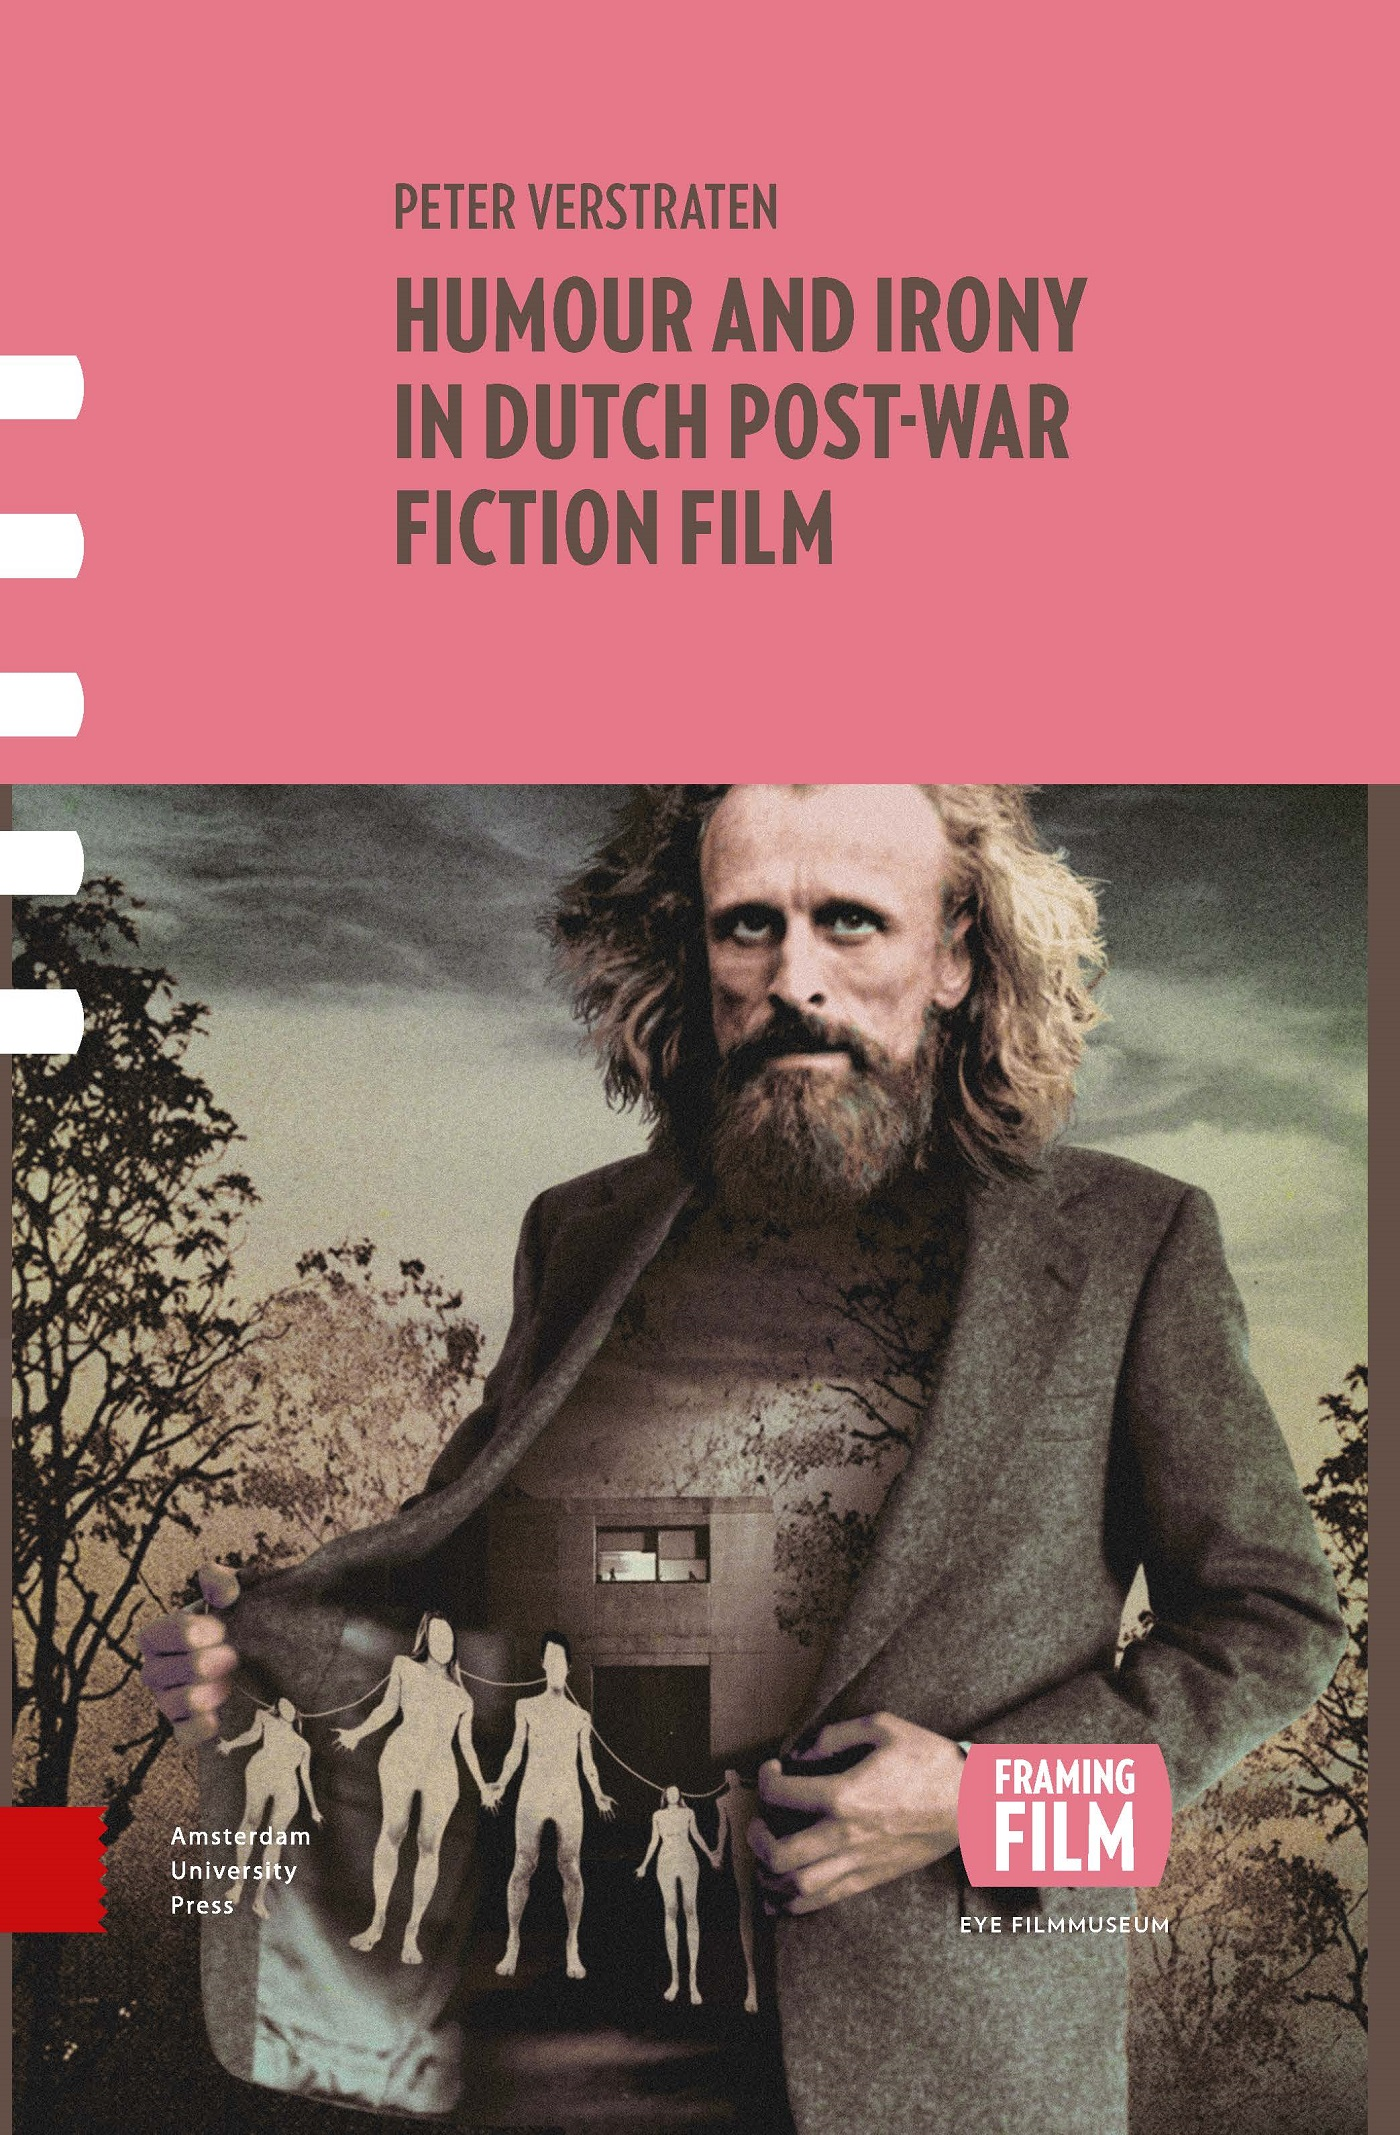 Cover Humour and irony in Dutch post-war fiction film